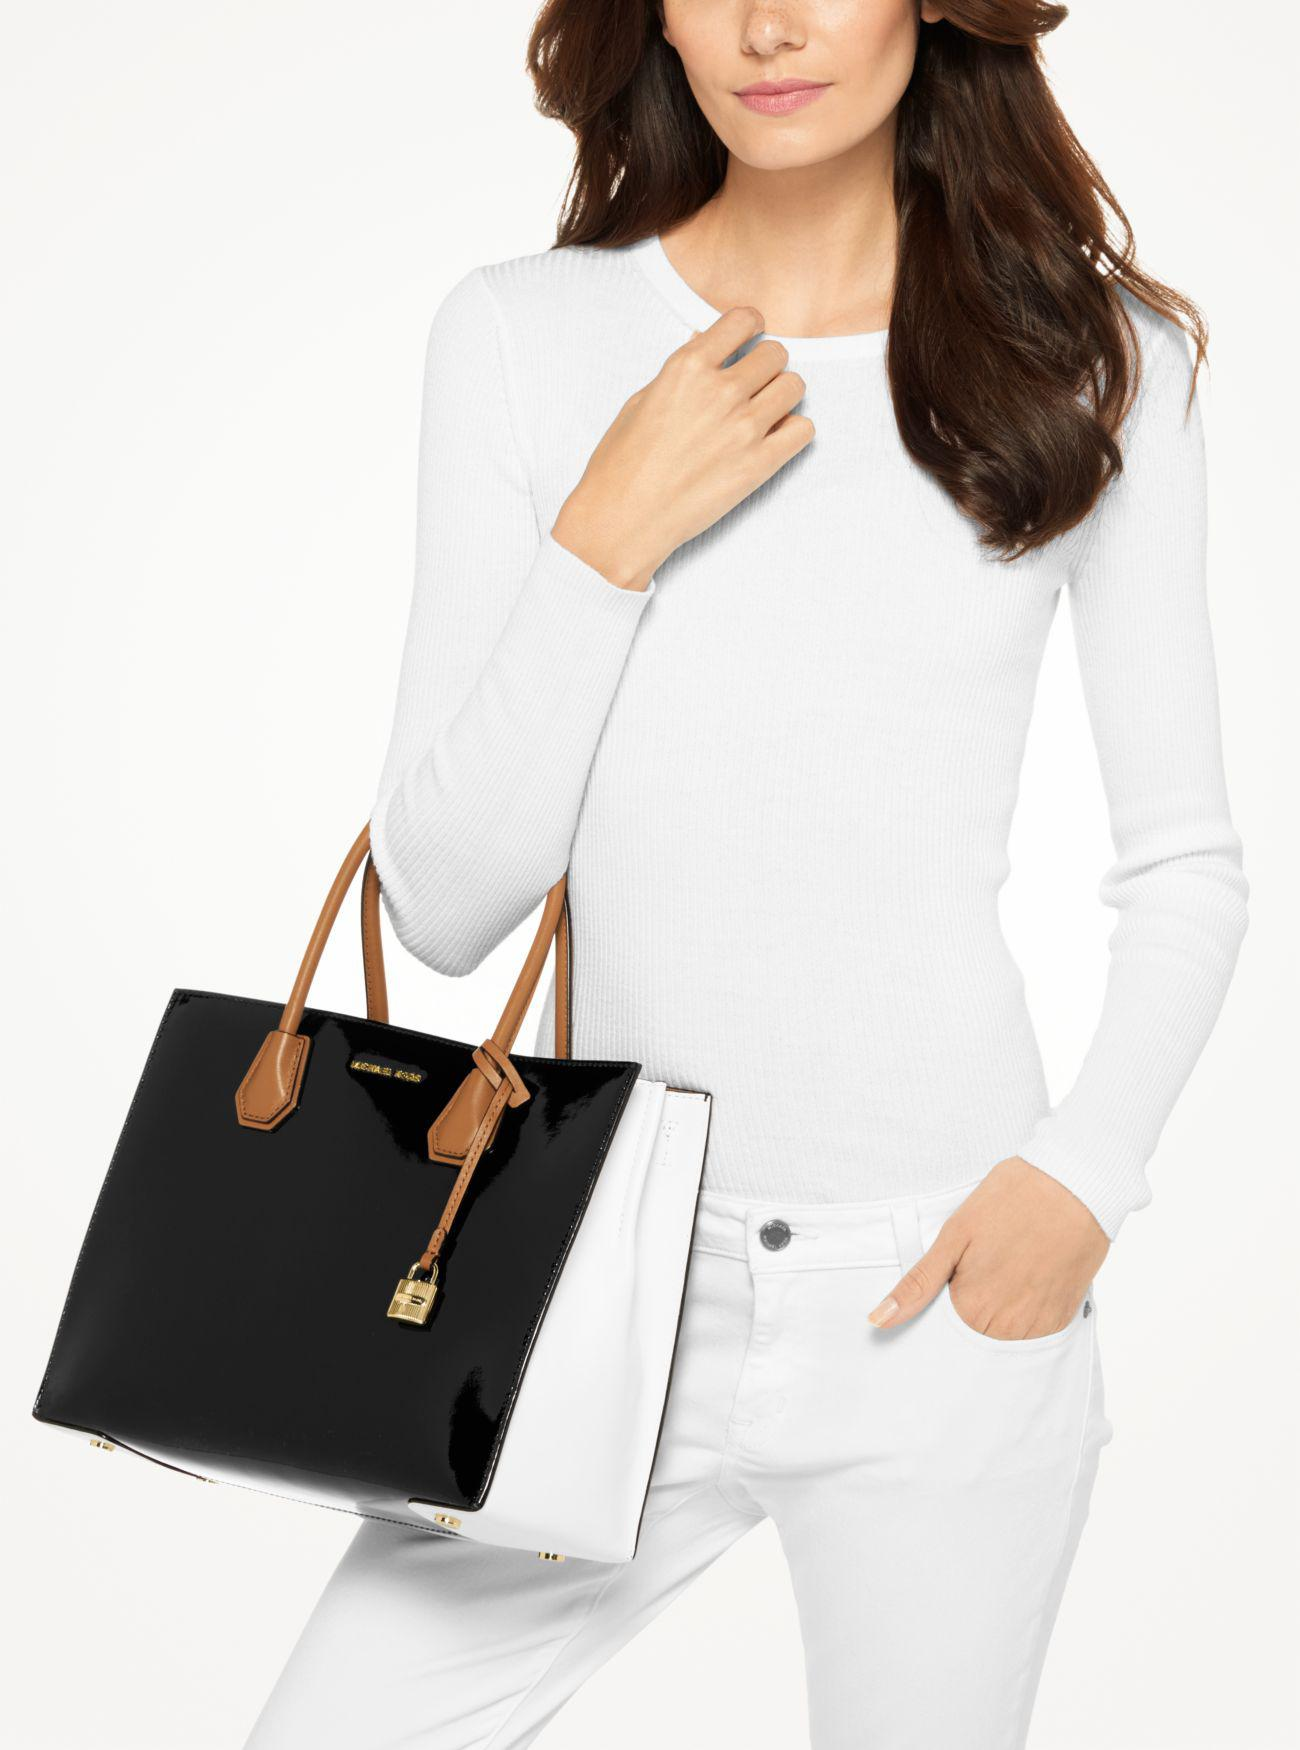 d7610ffb04a90c Michael Kors Mercer Large Color-block Patent Leather Tote in Black ...